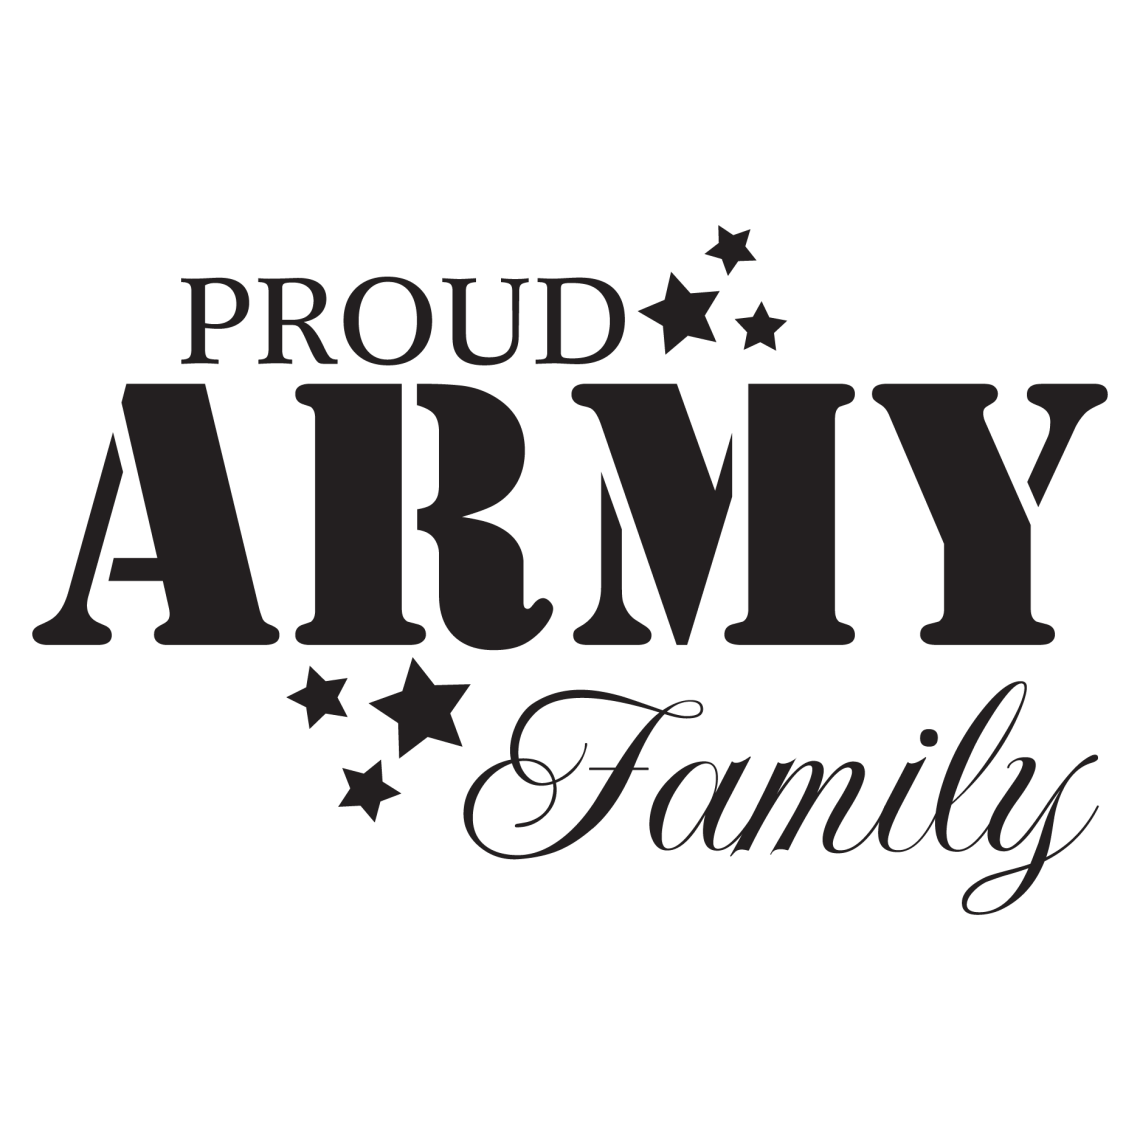 Download Proud Army Family Wall Quotes™ Decal | WallQuotes.com